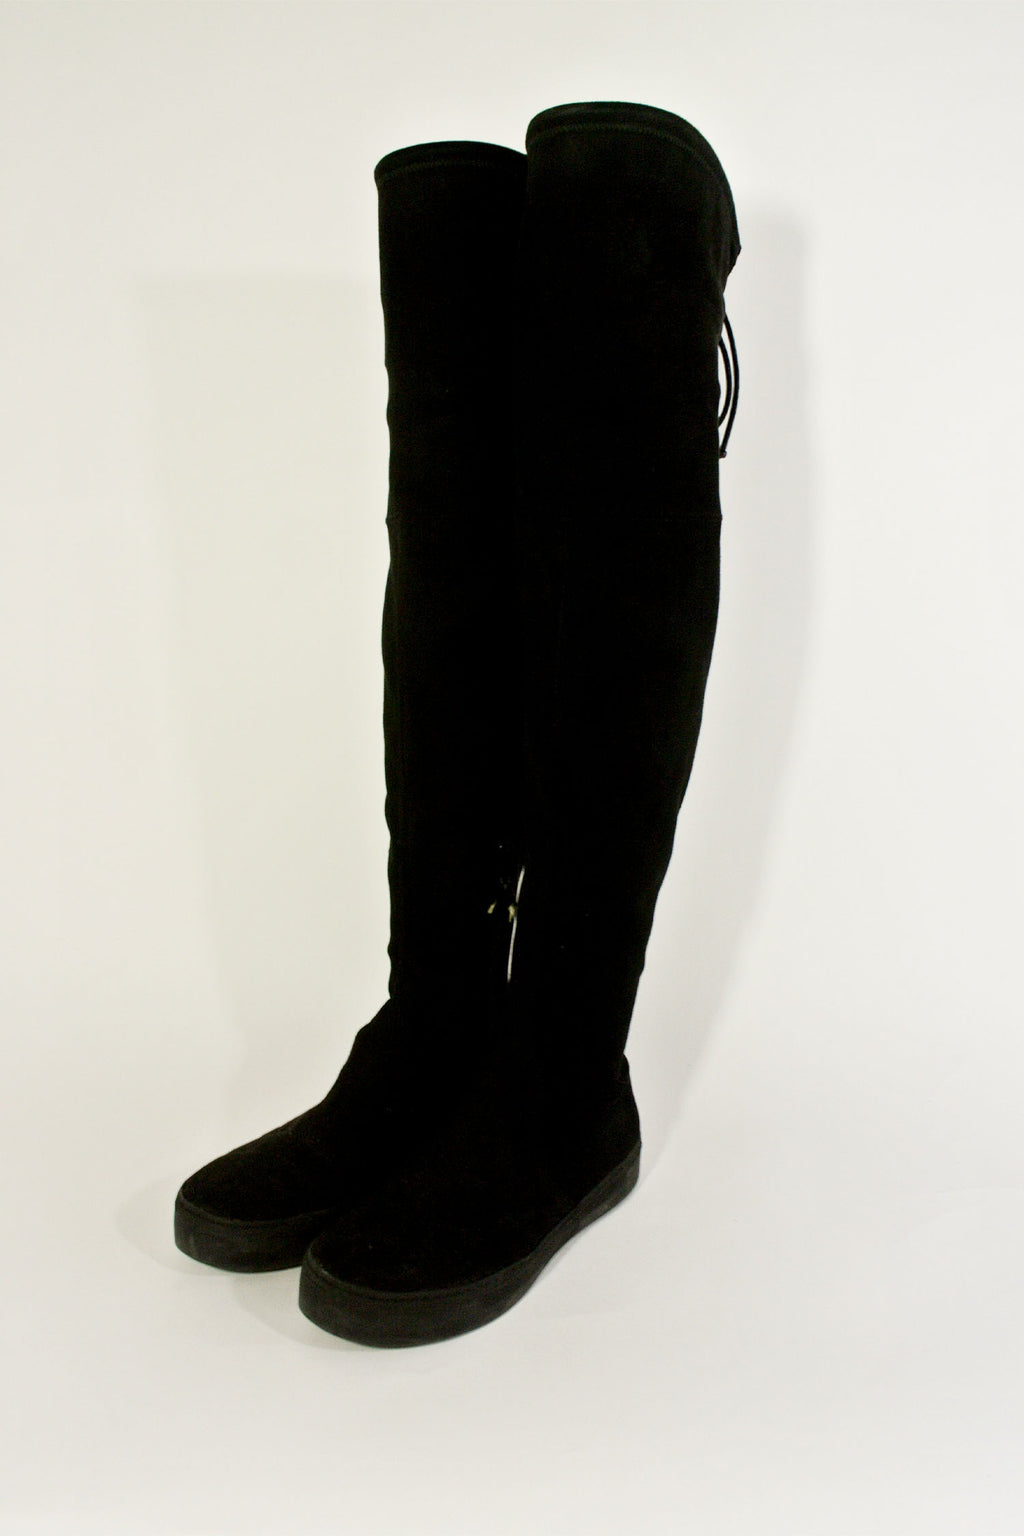 Stuart Weitzman Knee High Boots sz 6